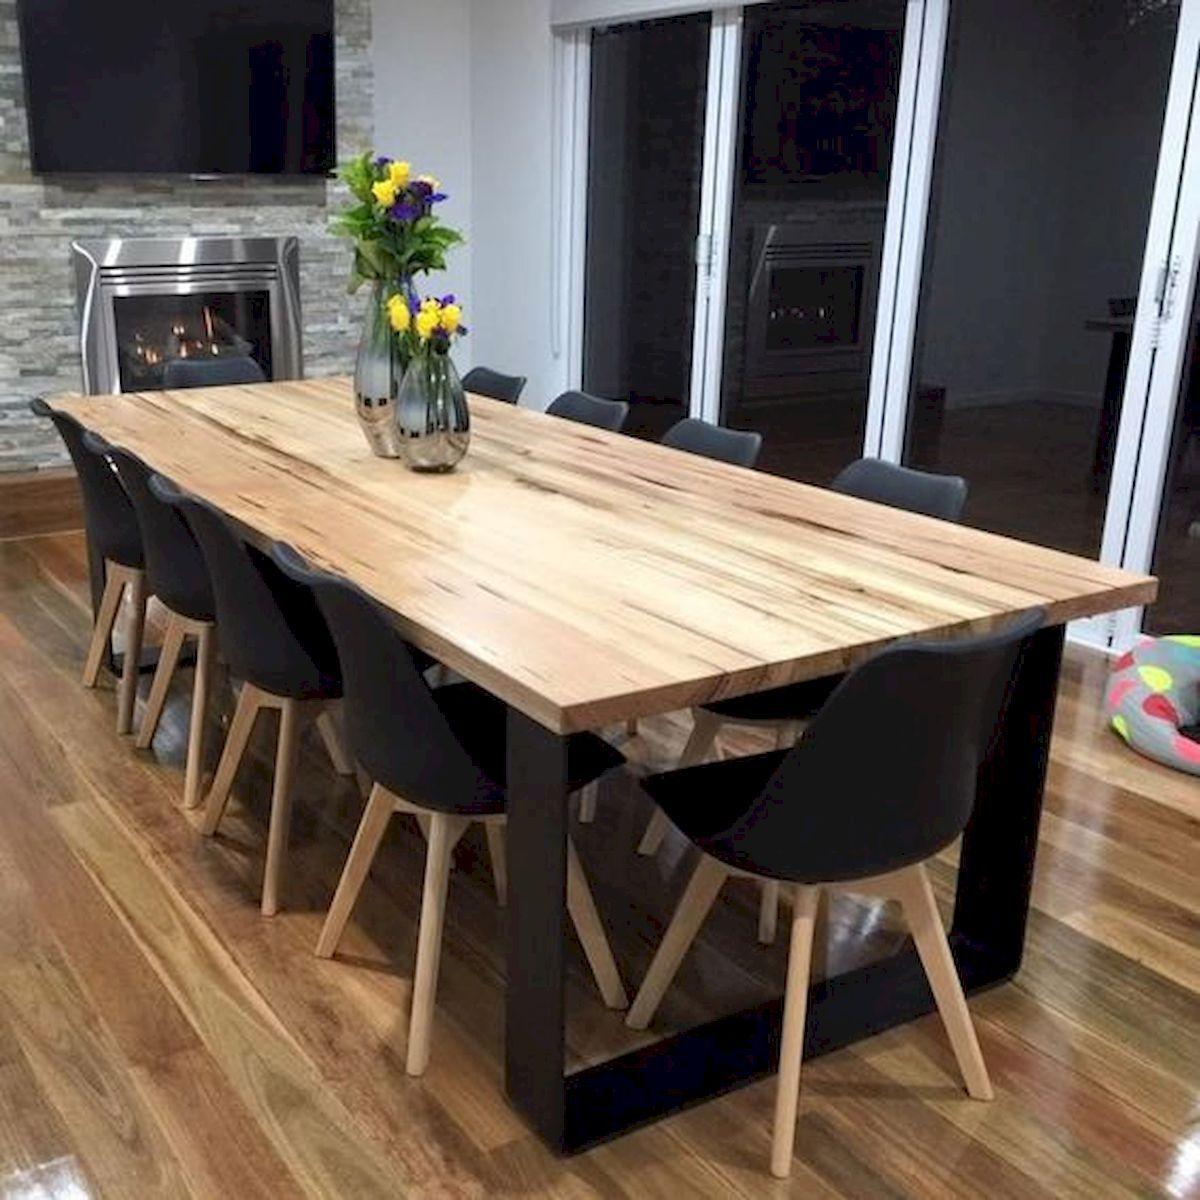 50 Awesome Diy Rustic Dining Table Design Ideas Dinning Table